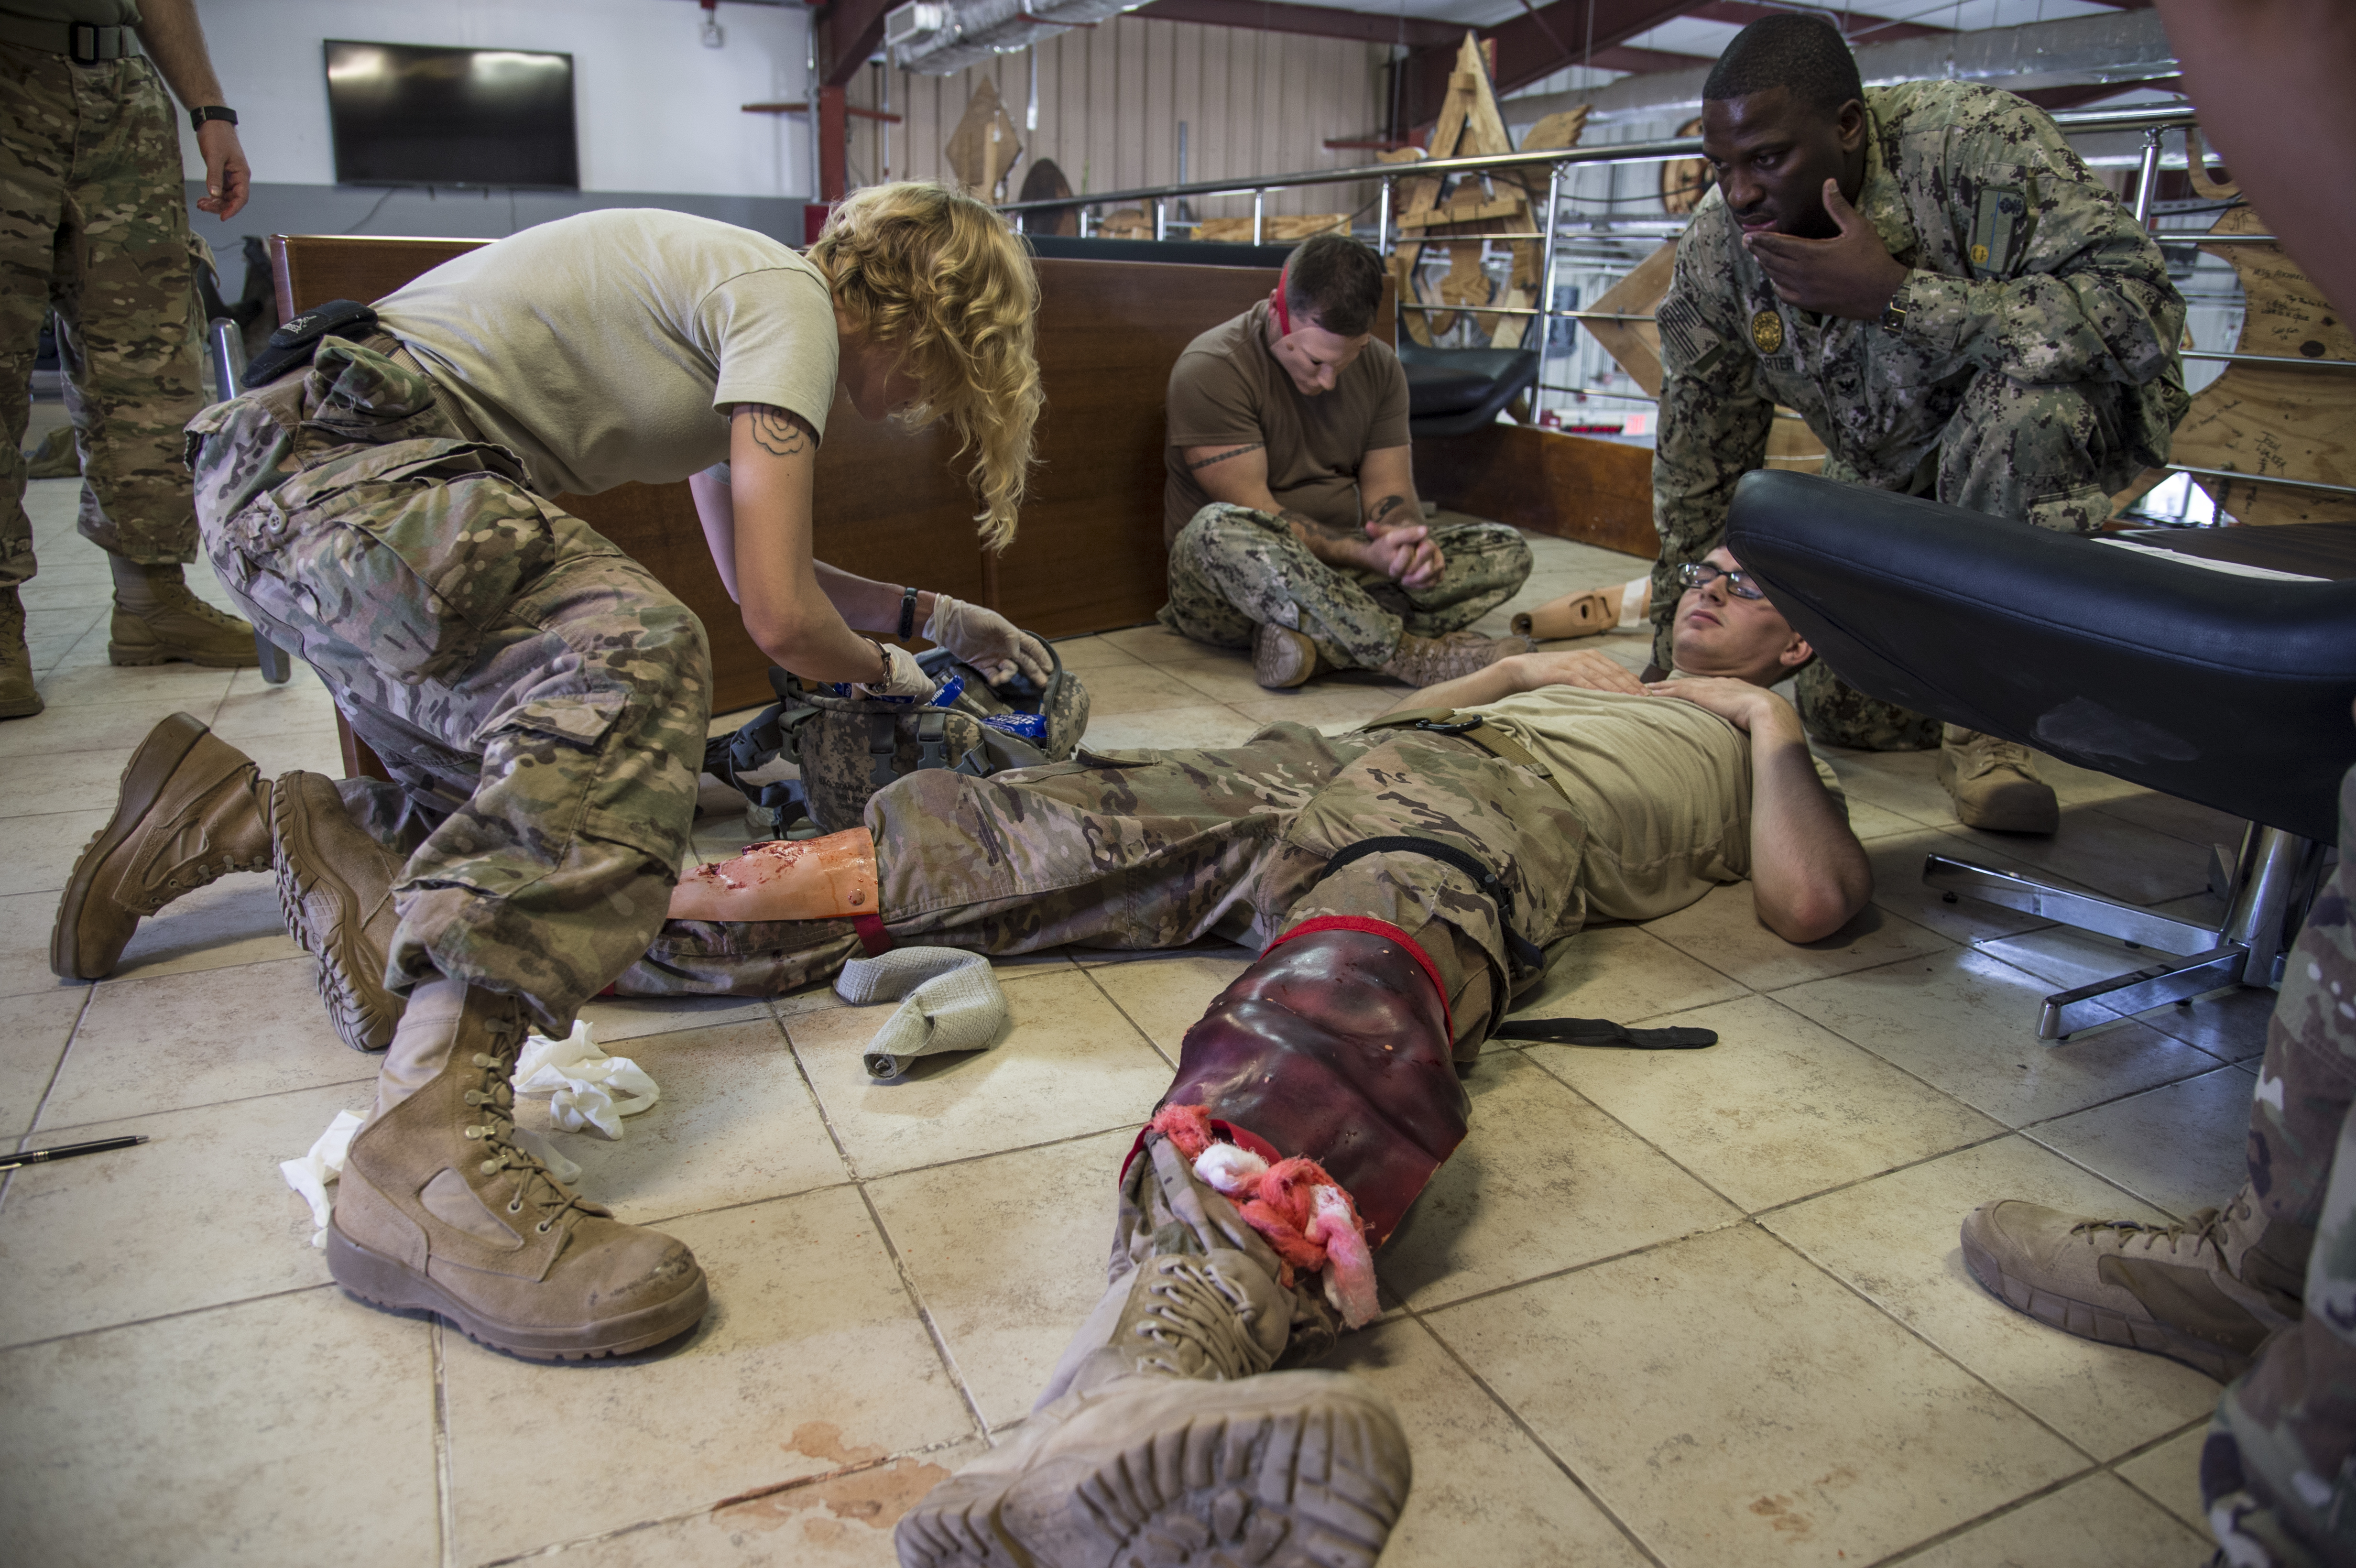 U.S. Air Force Tech. Sgt. Andria Allmond, Combined Joint Task Force-Horn of Africa, treats mock casualties during the tactical field care part of the combat lifesaver course practical assessment held on Camp Lemonnier, Djibouti, Sept. 14, 2017. The five-day course consists of 40 hours of blended classroom and hands-on training given by certified combat medics. The Army medics open the course to all military branches here. (U.S. Air National Guard photo by Tech. Sgt. Joe Harwood)